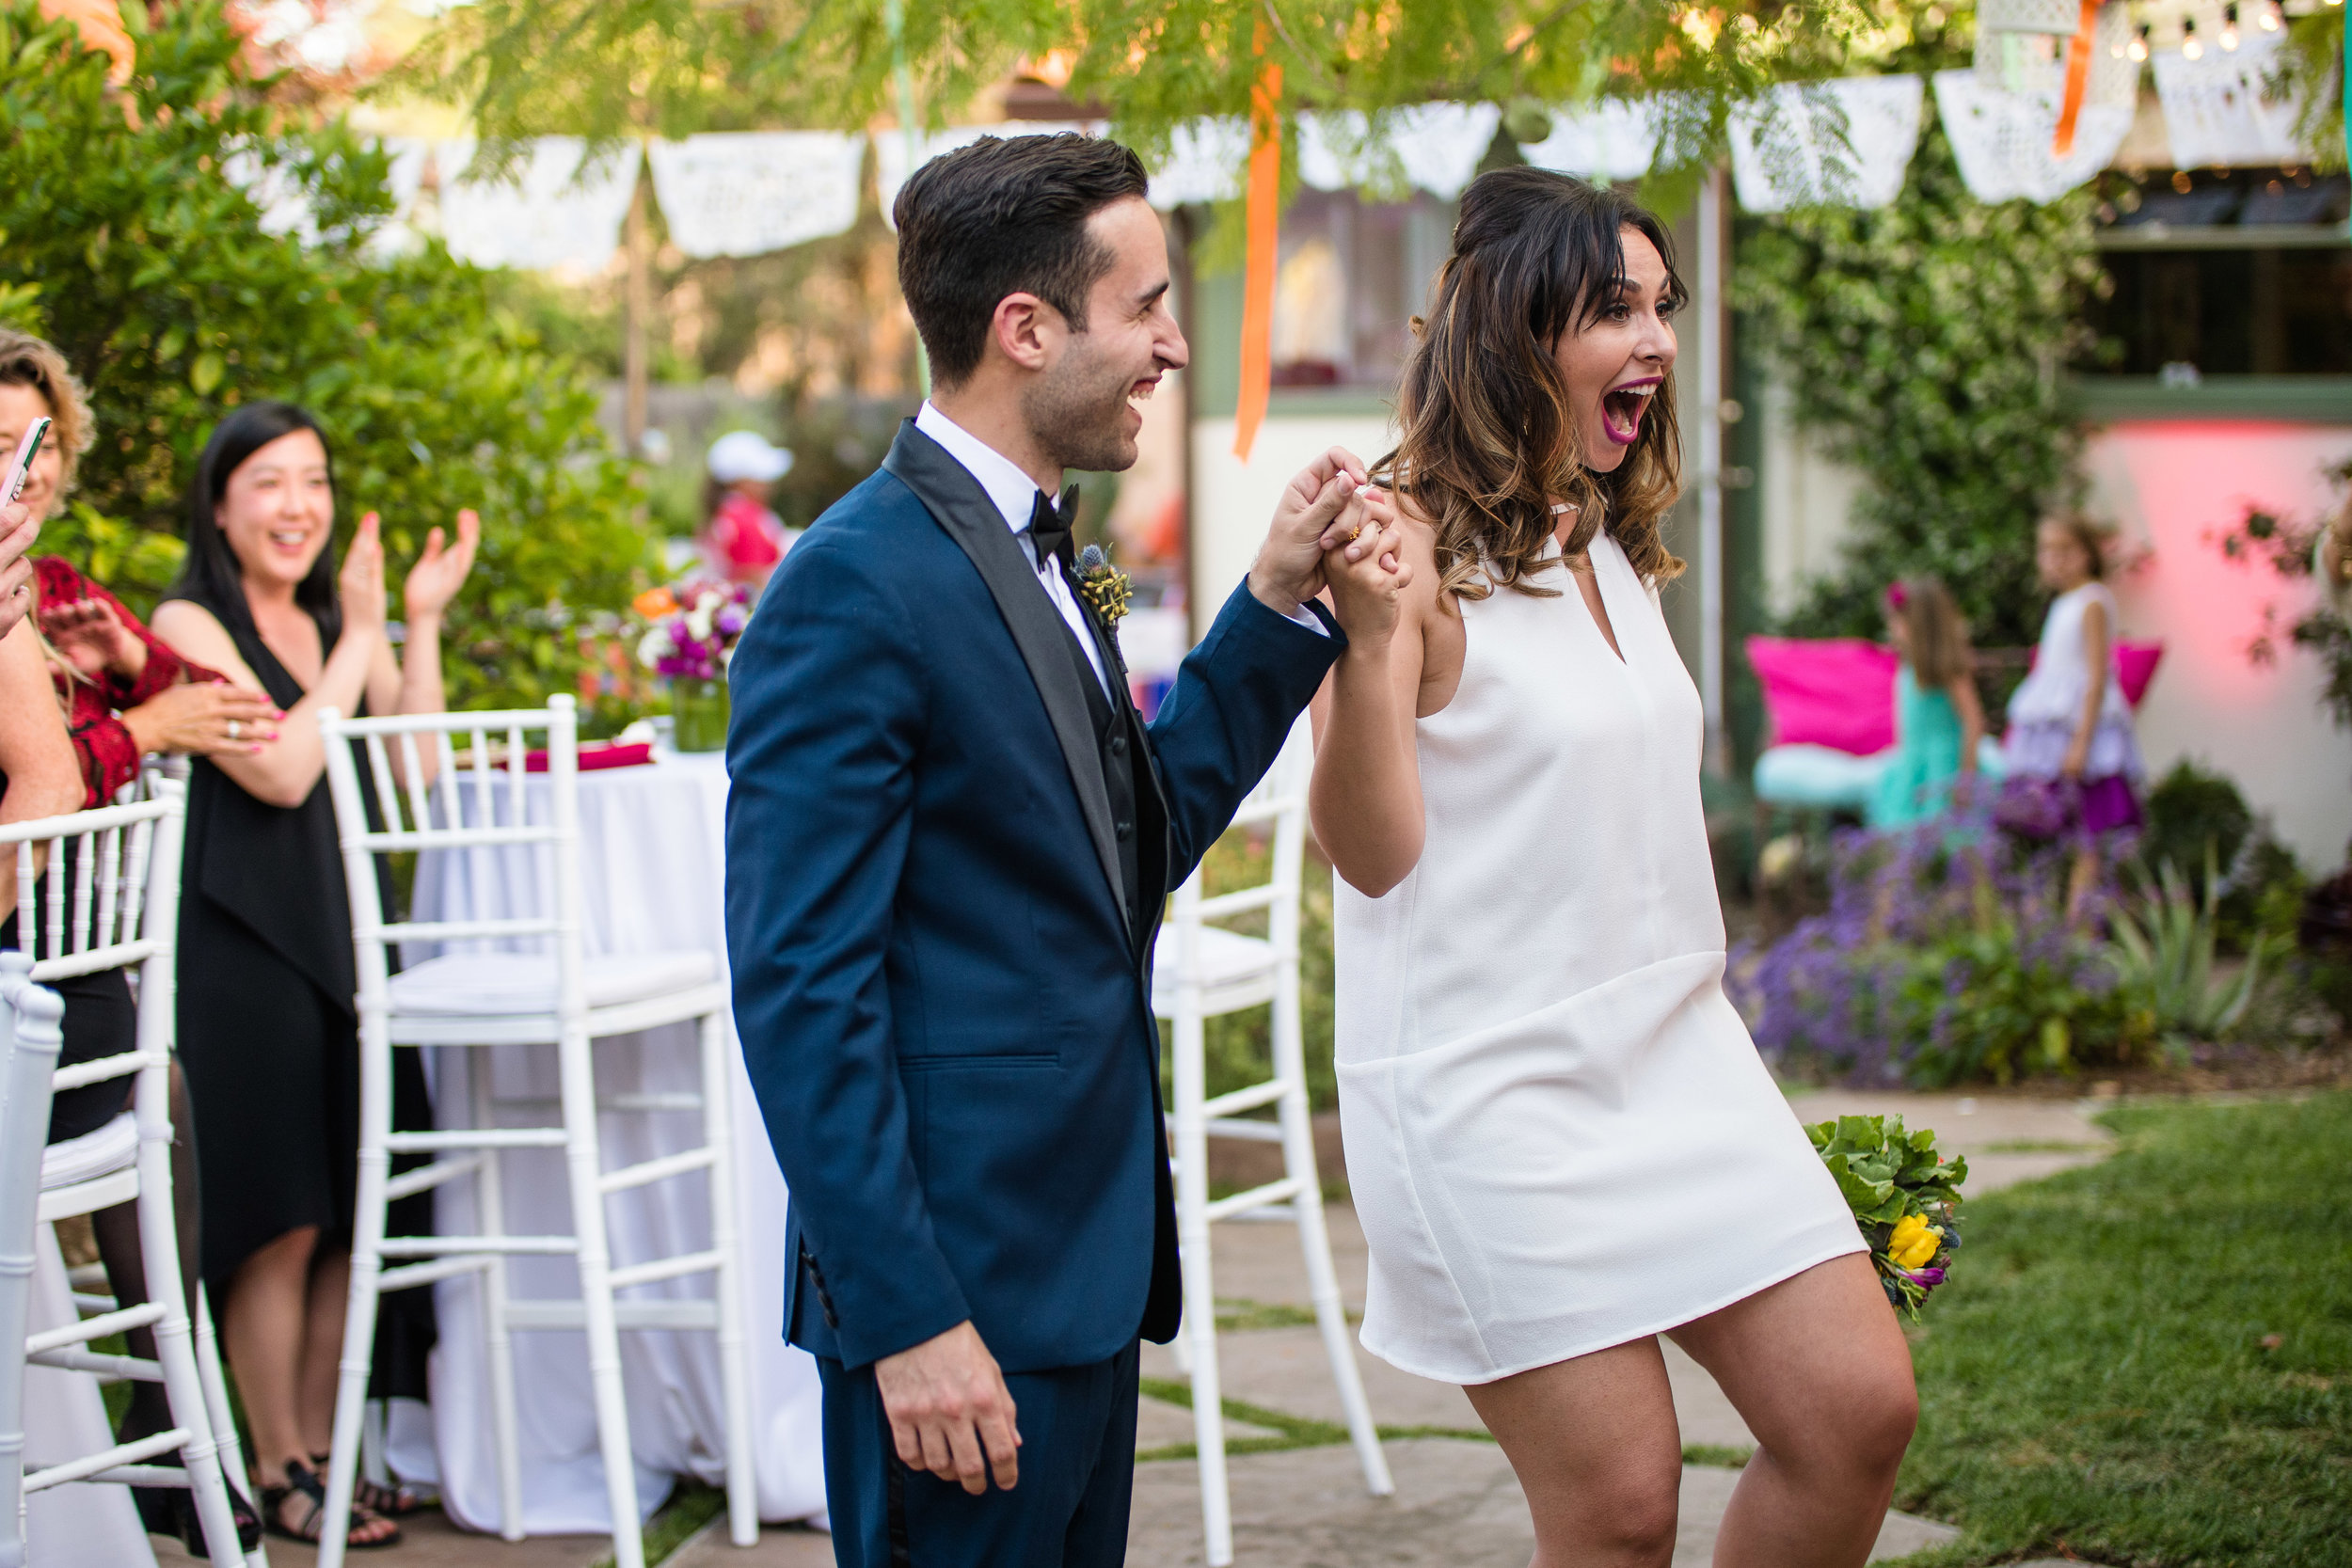 Vibrant Fiesta Backyard Wedding Reception bride happy to see family and friends.jpg